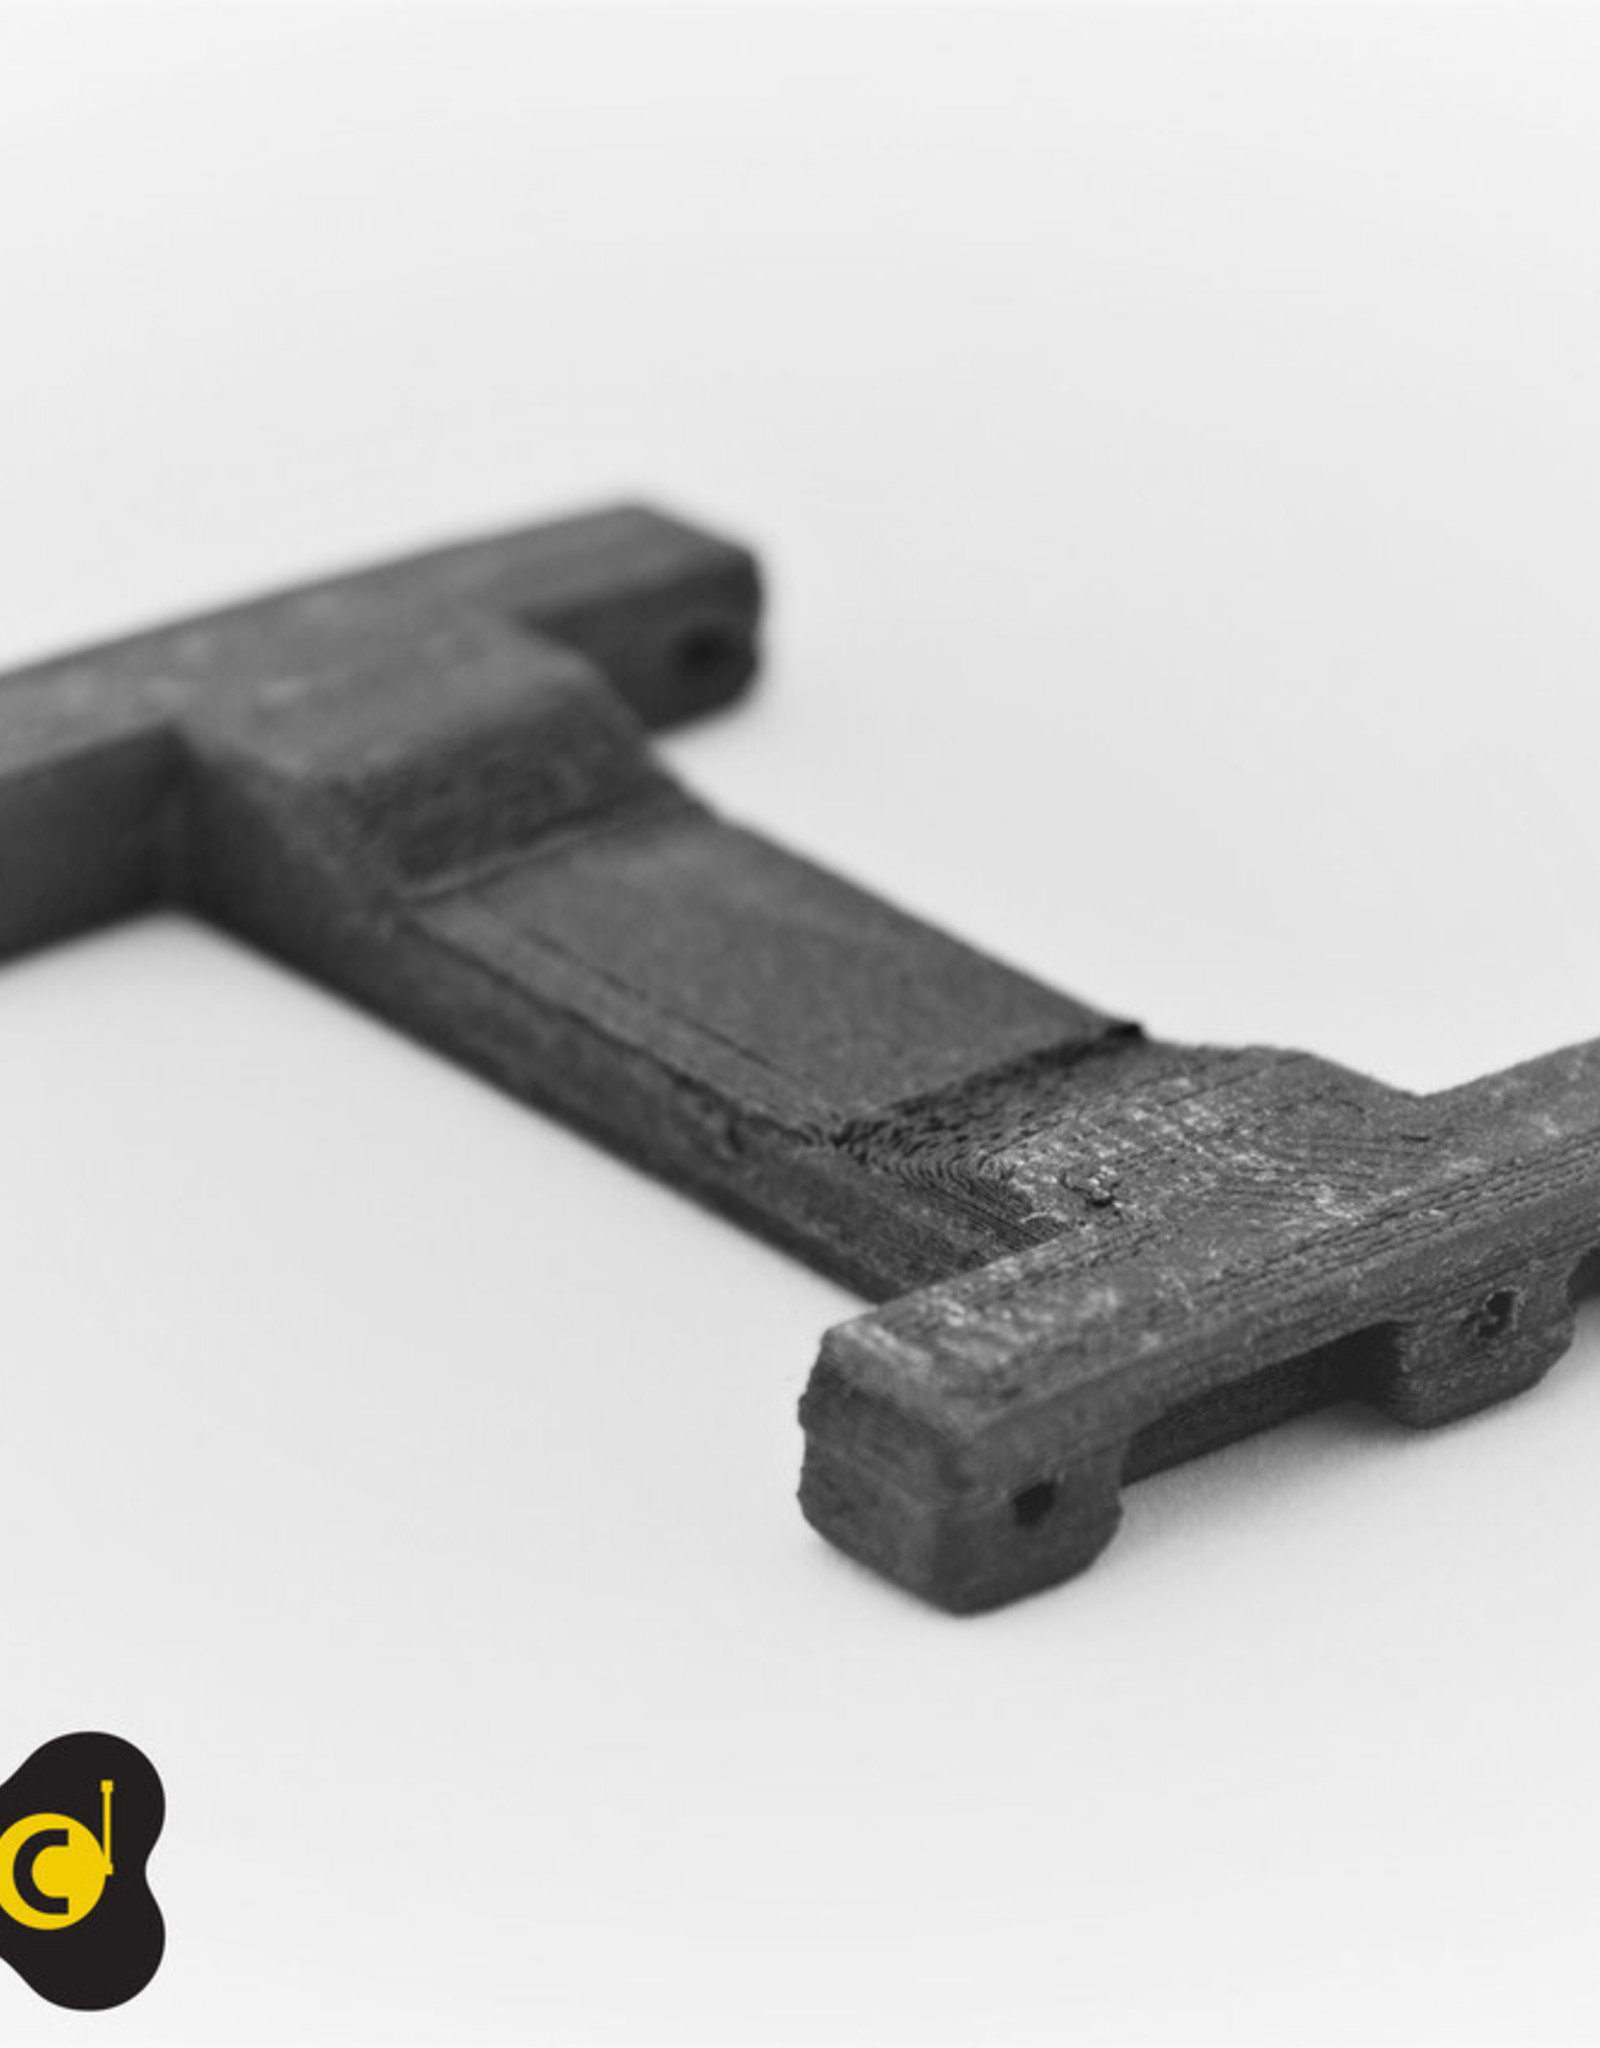 BowhouseRC Rear Chassis Brace for TRX-4